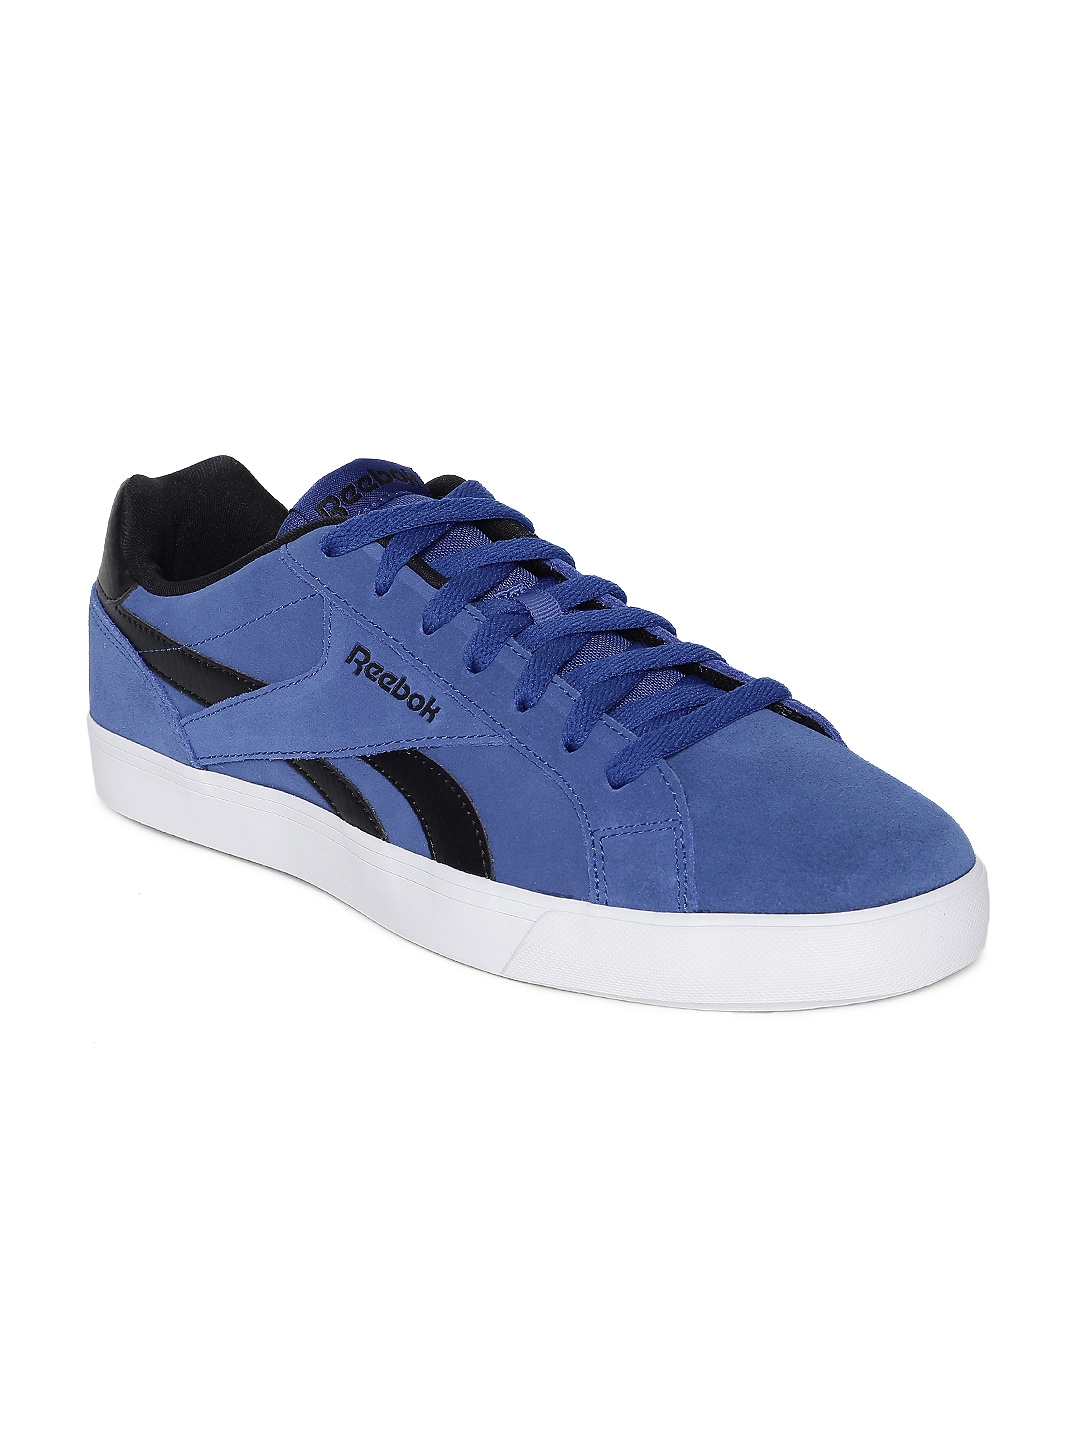 aefb6e953867 Reebok Classic Shoes - Buy Reebok Classic Shoes online in India